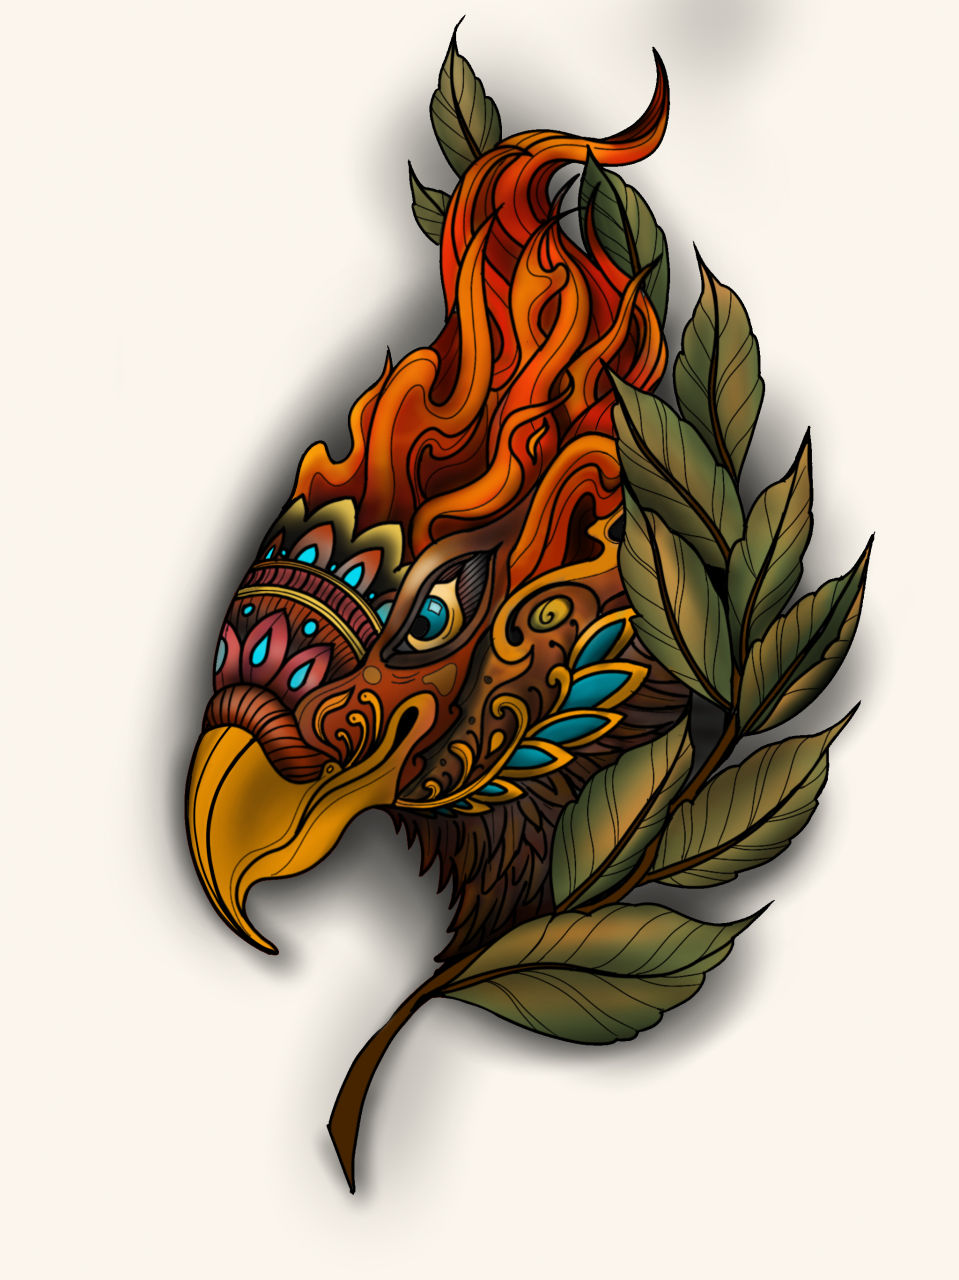 I've been working on trying to be more creative in my designs, so I like to challenge myself to combine different subjects and styles. This one is a neo traditional eagle influenced by a thai Naga, morphed with a torch.